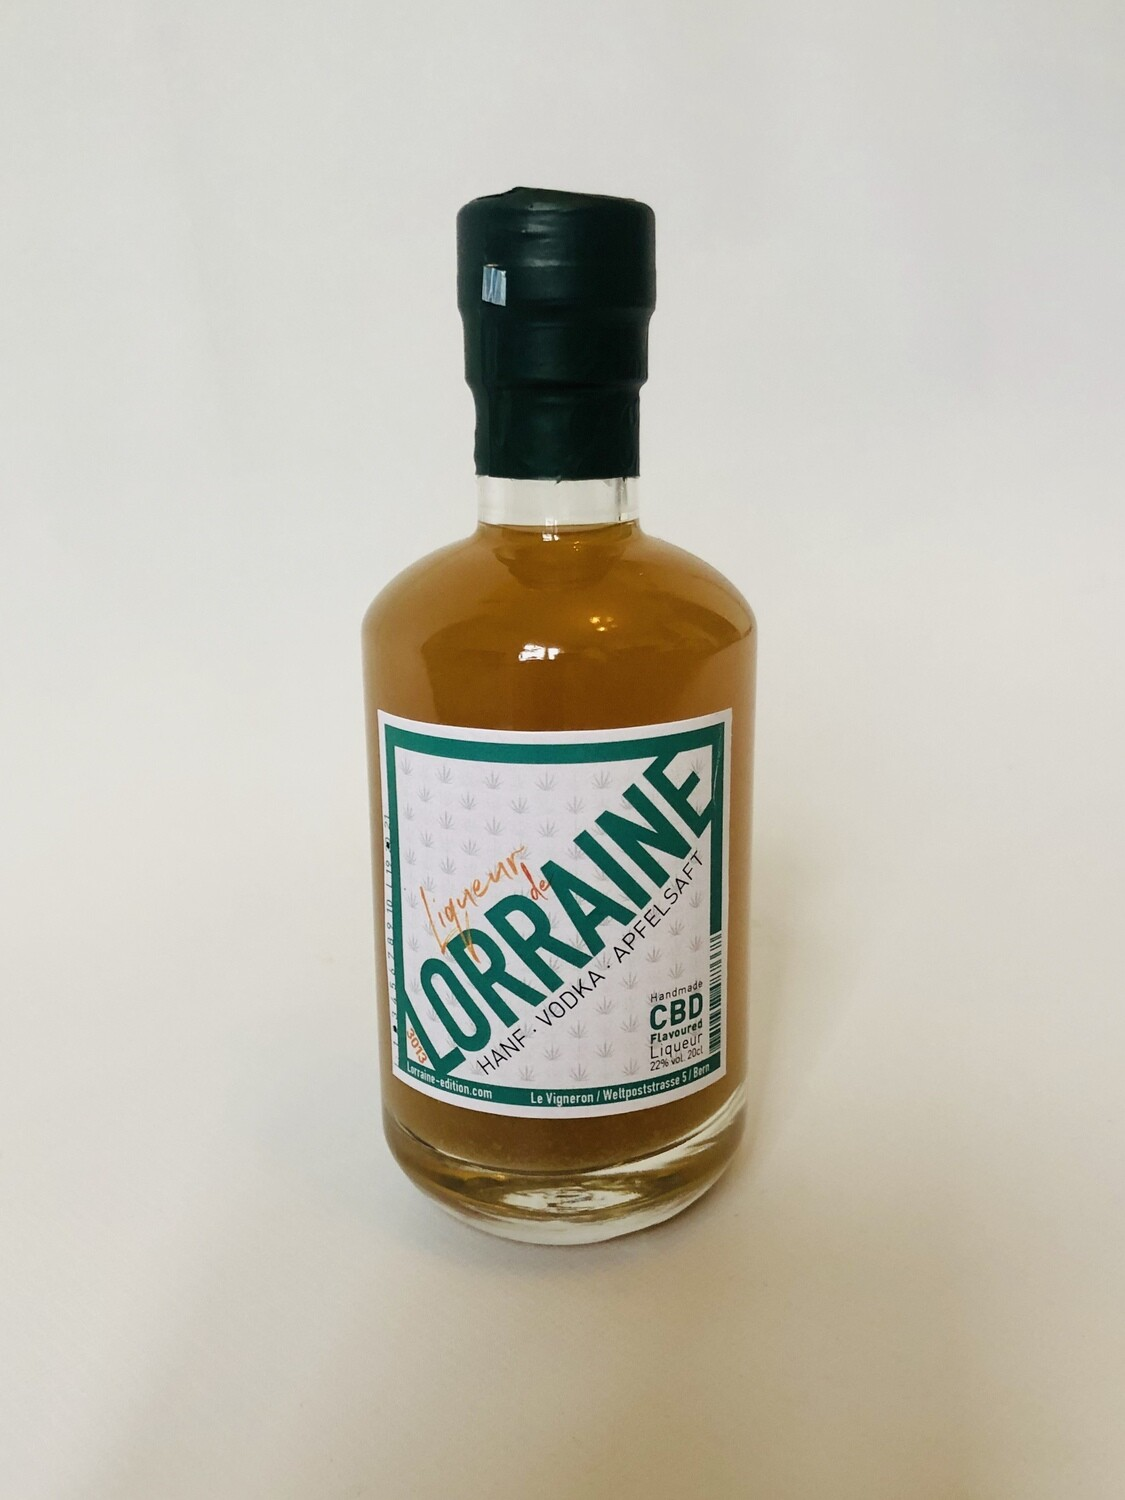 LIKÖR |   CBD Flavoured-Likör, 200 ml, 22%vol.